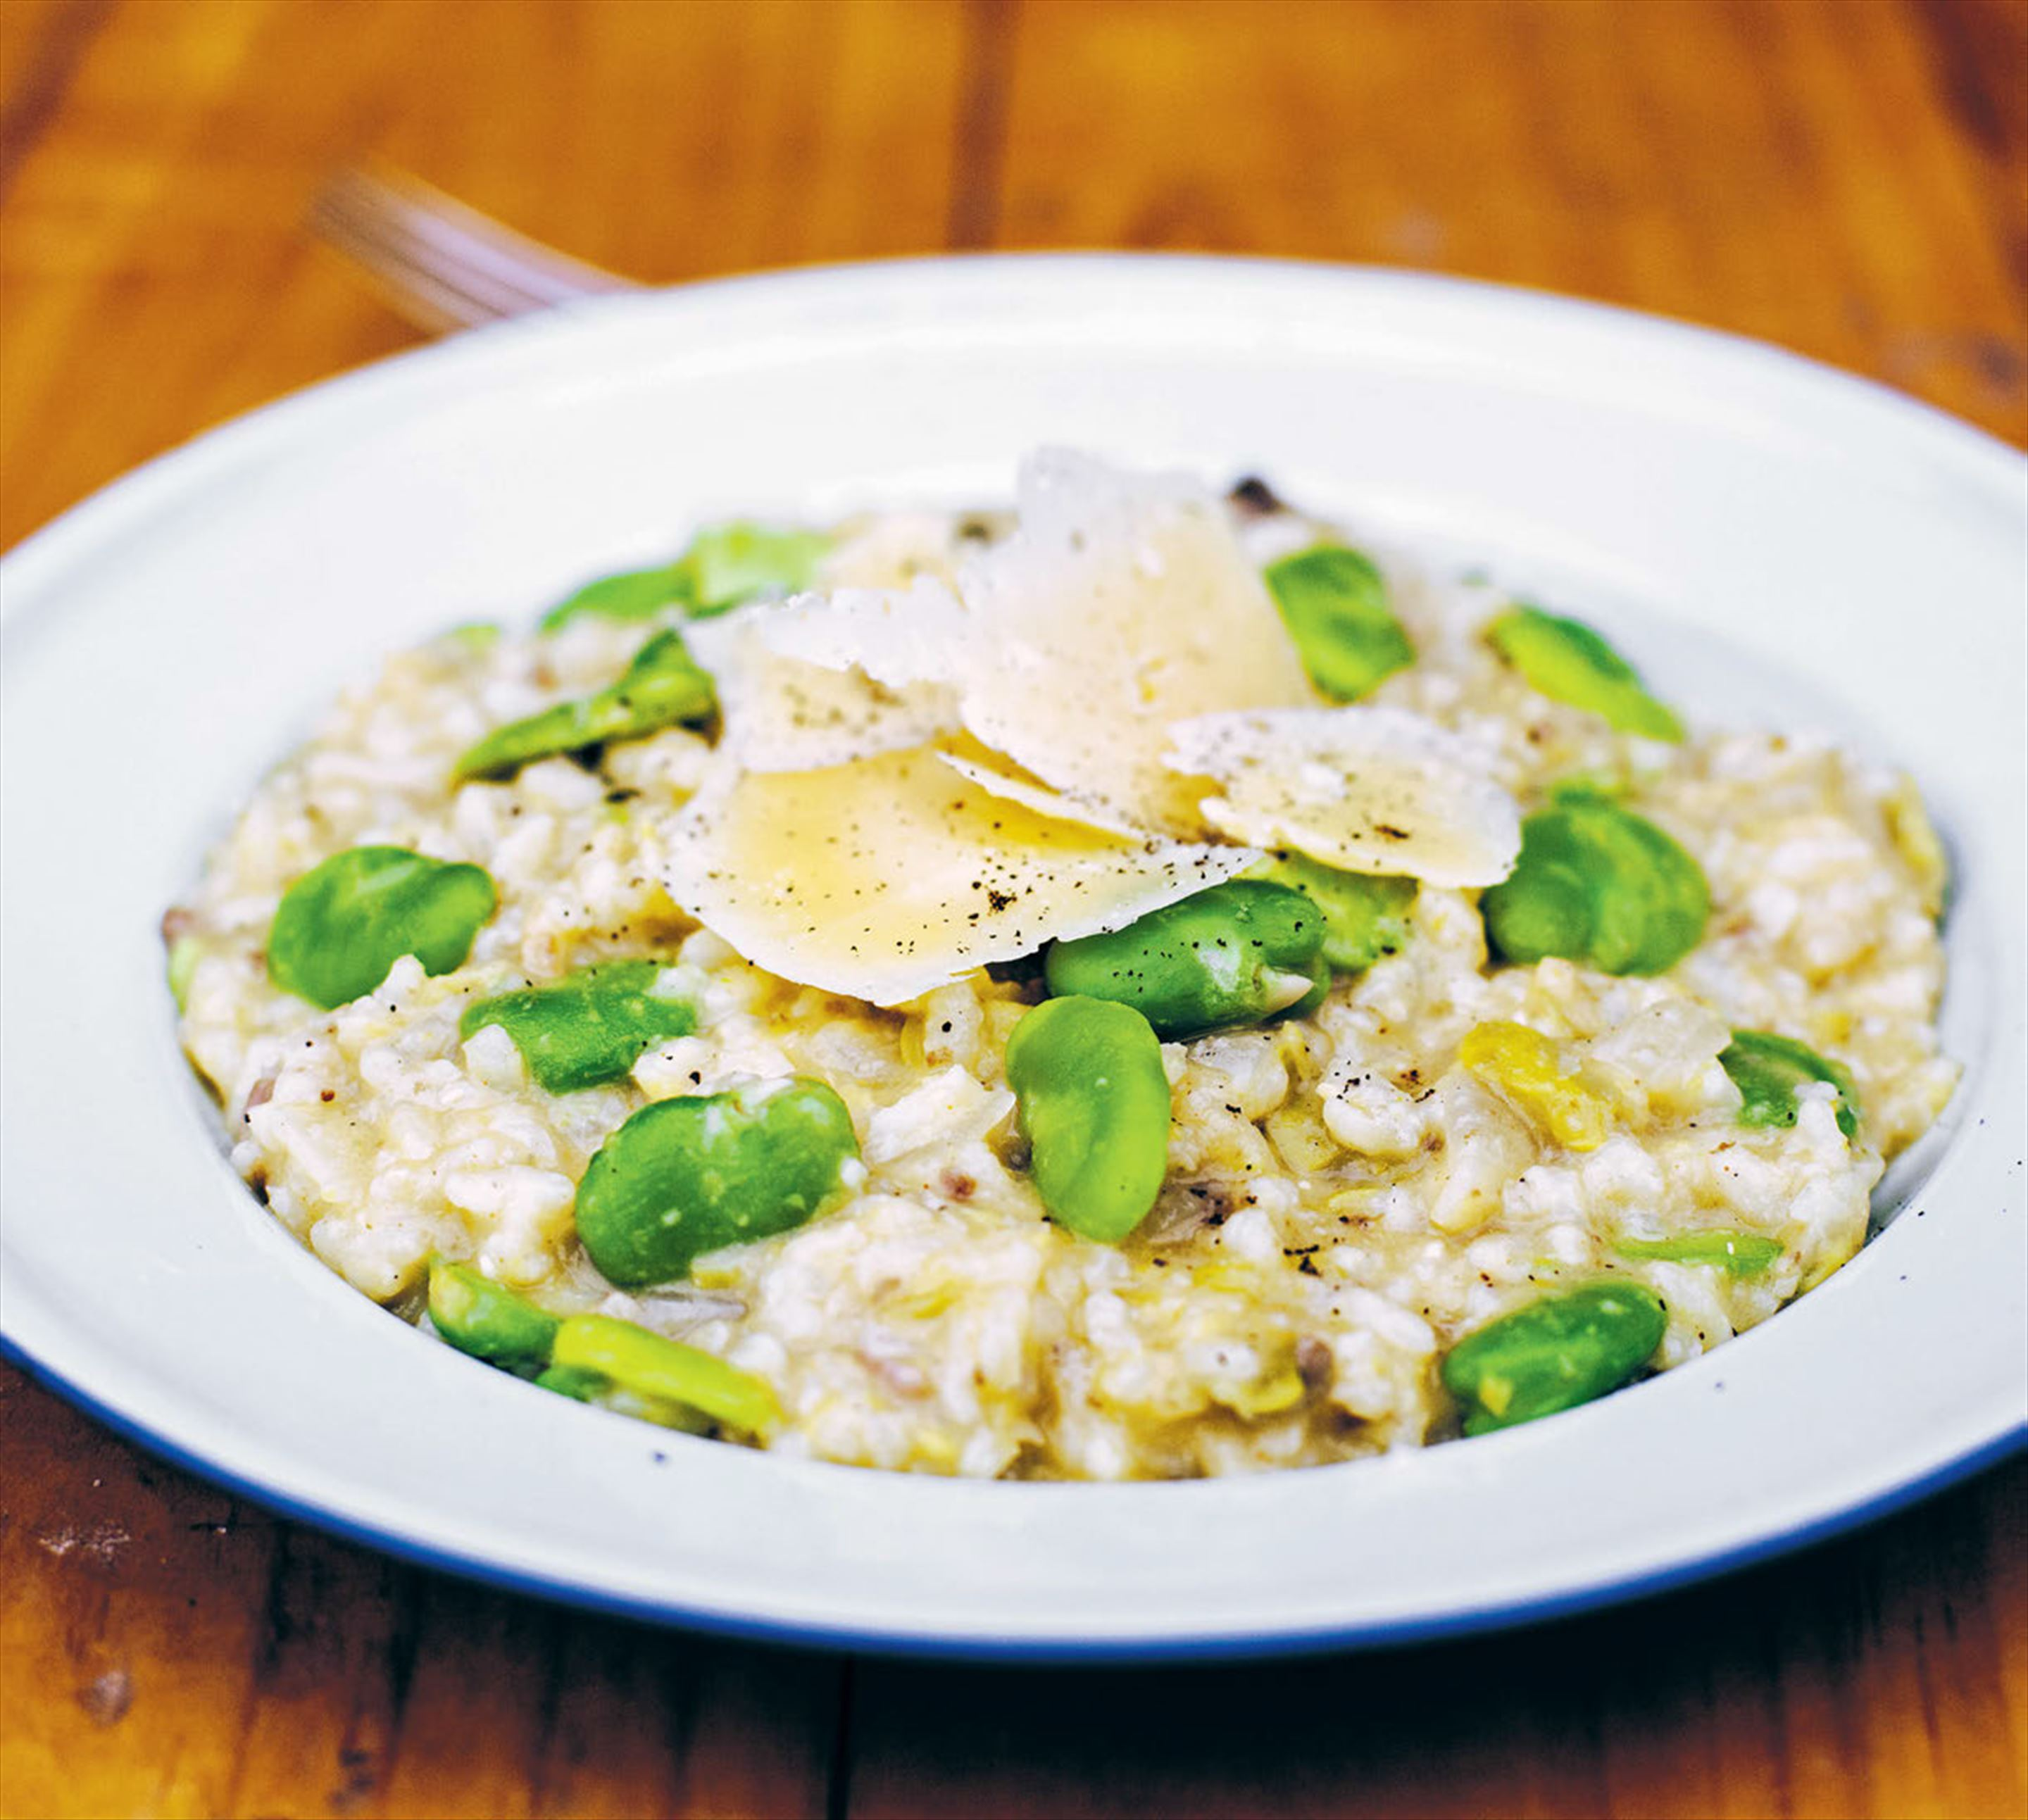 Broad bean risotto